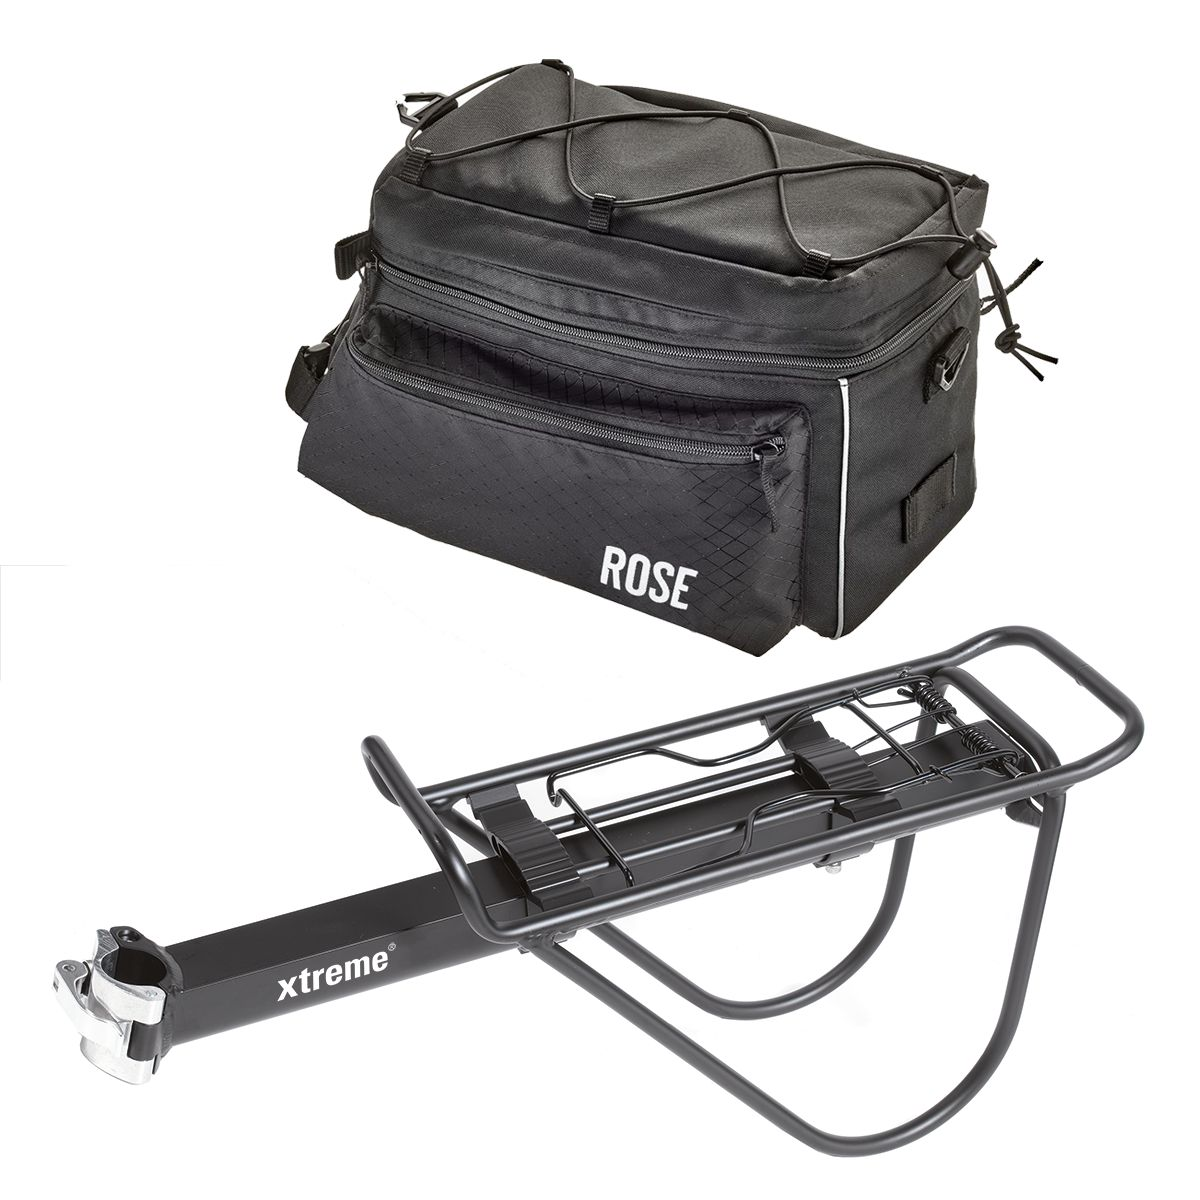 Set seatpost rack S.P.R. II incl. bag